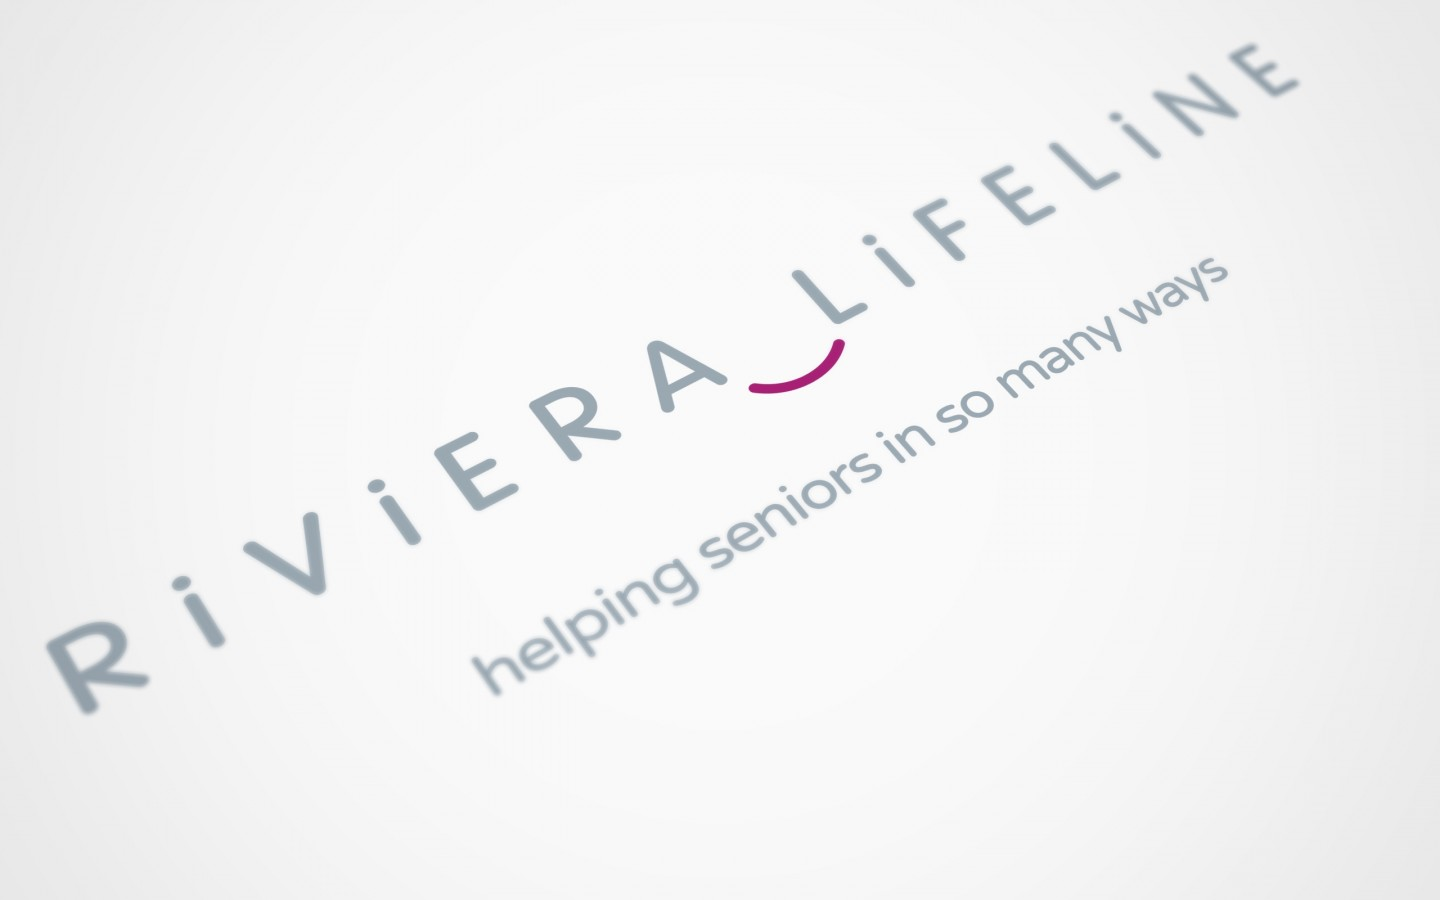 Riviera Lifeline Branding Project by Crevisio